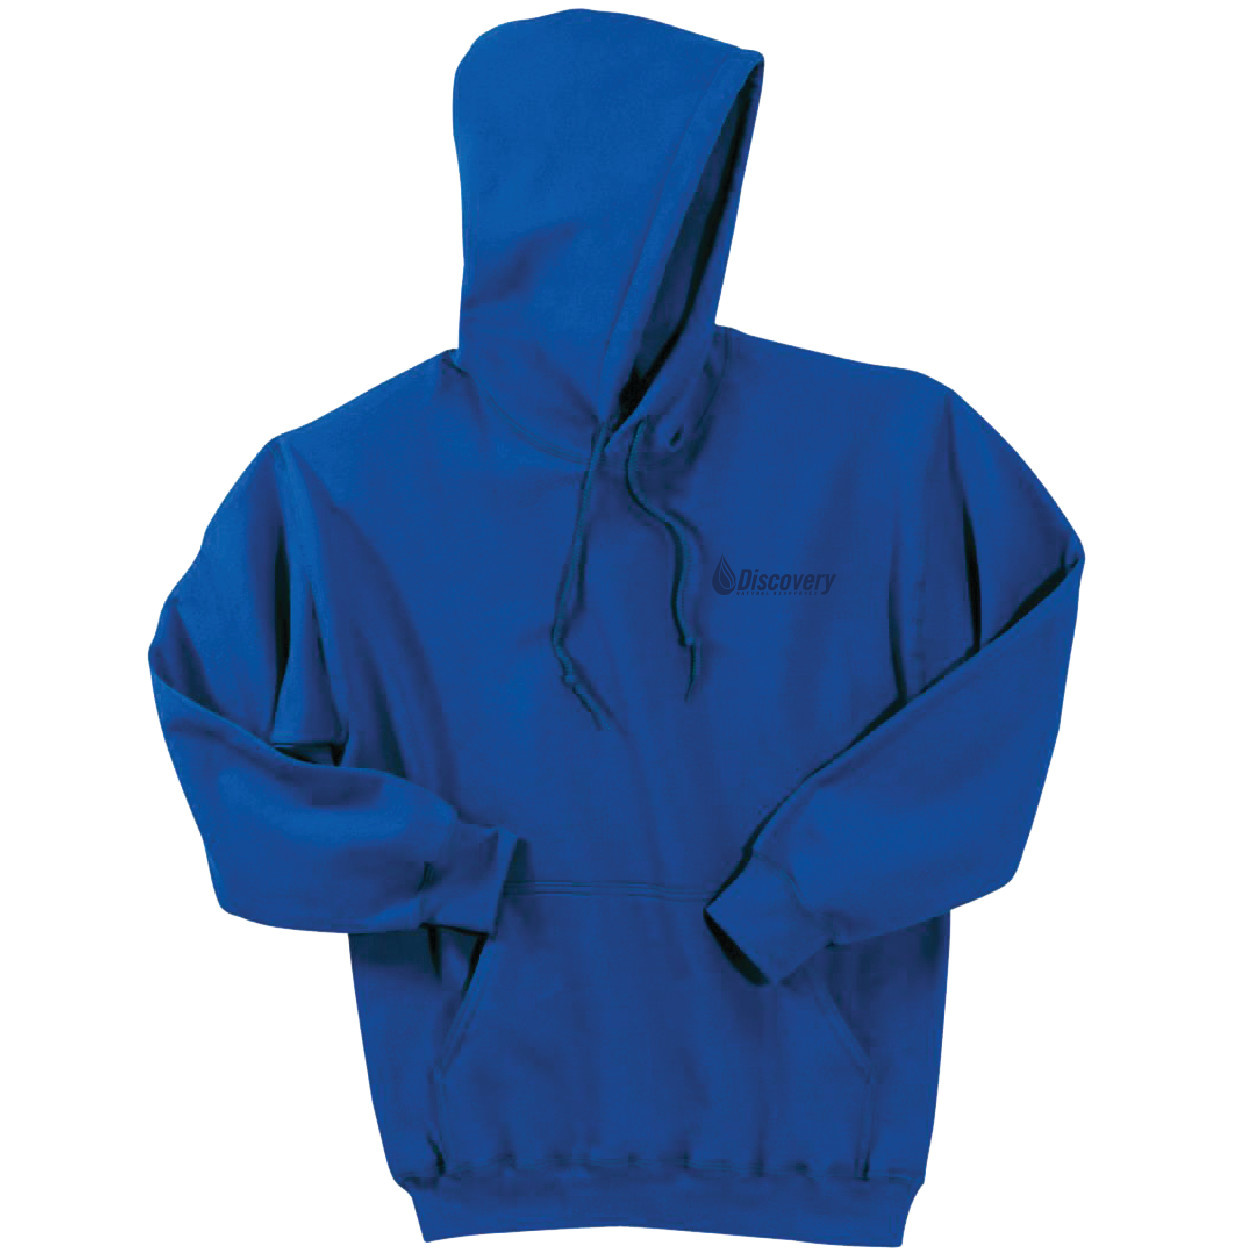 Gildan Gildan Dry Blend Pullover Hooded Sweatshirt (Royal)